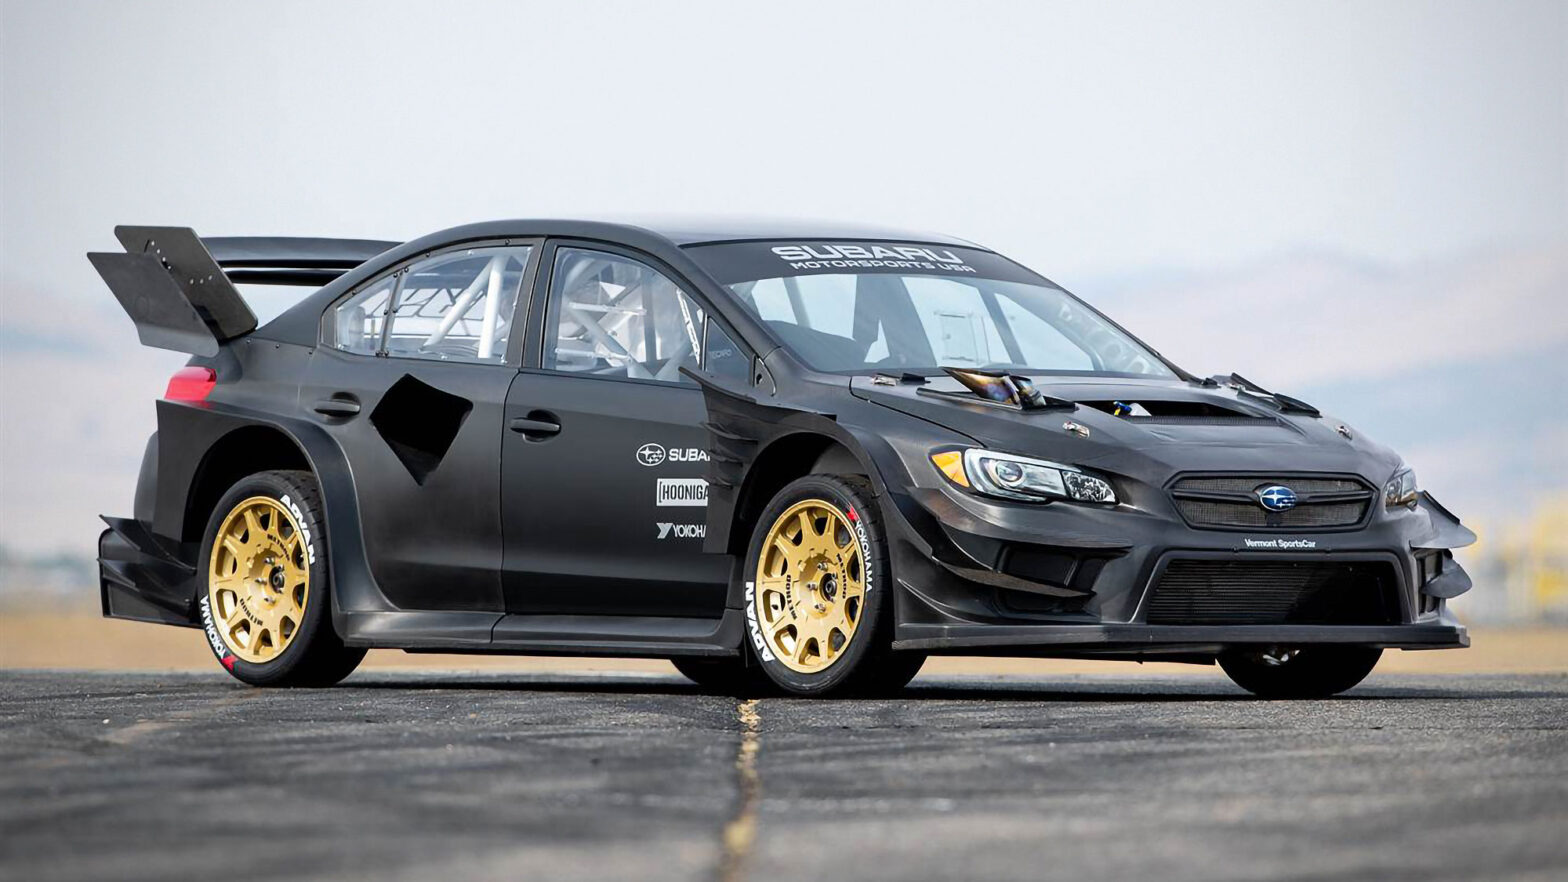 Subaru Gymkhana STI Sports Sedan